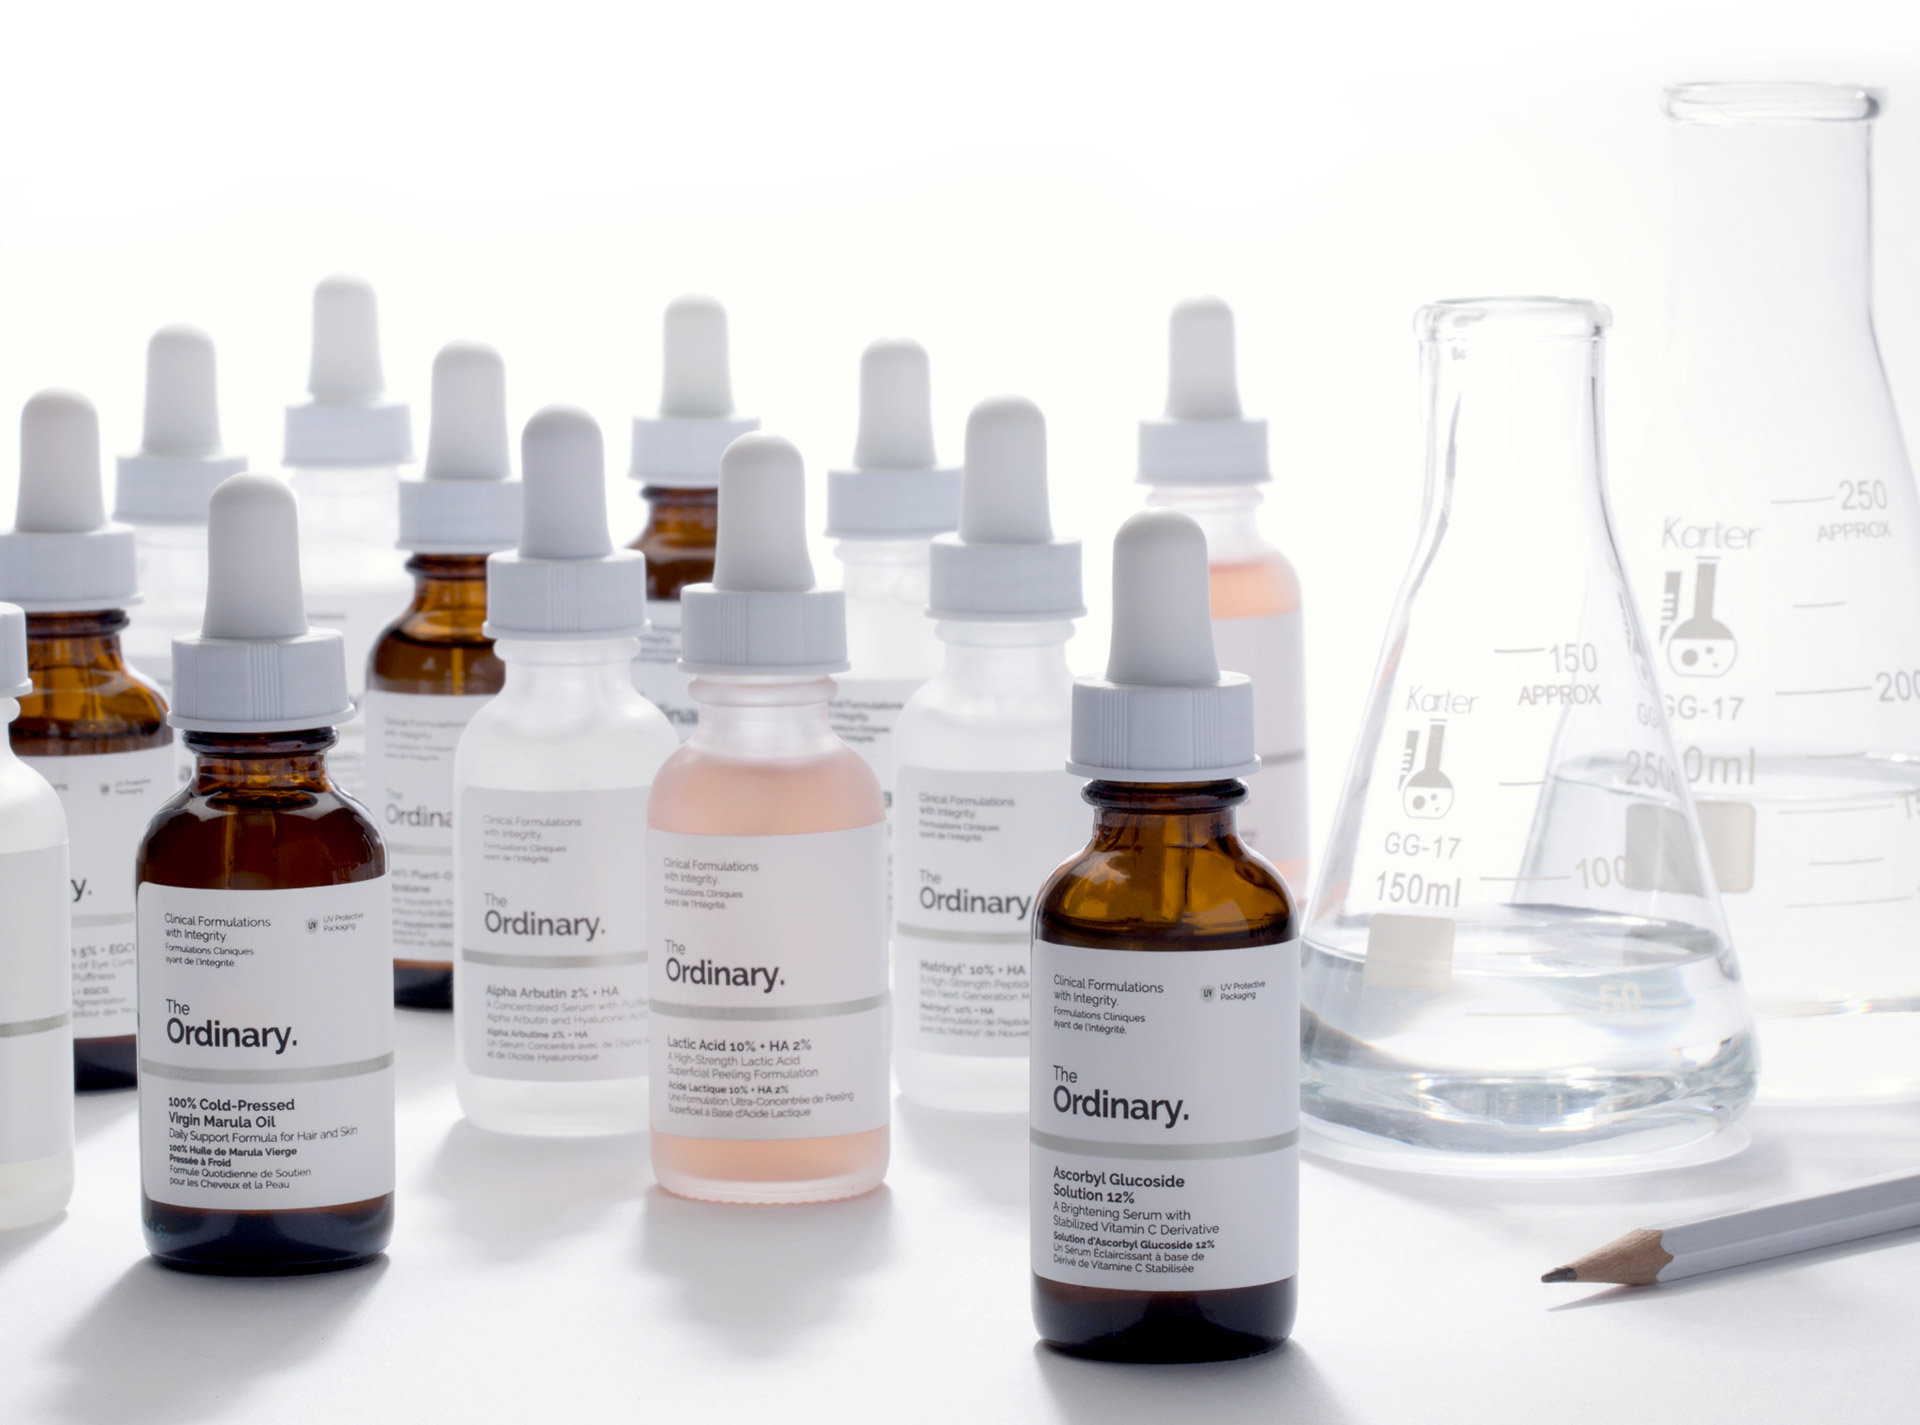 The Ordinary cosmetica